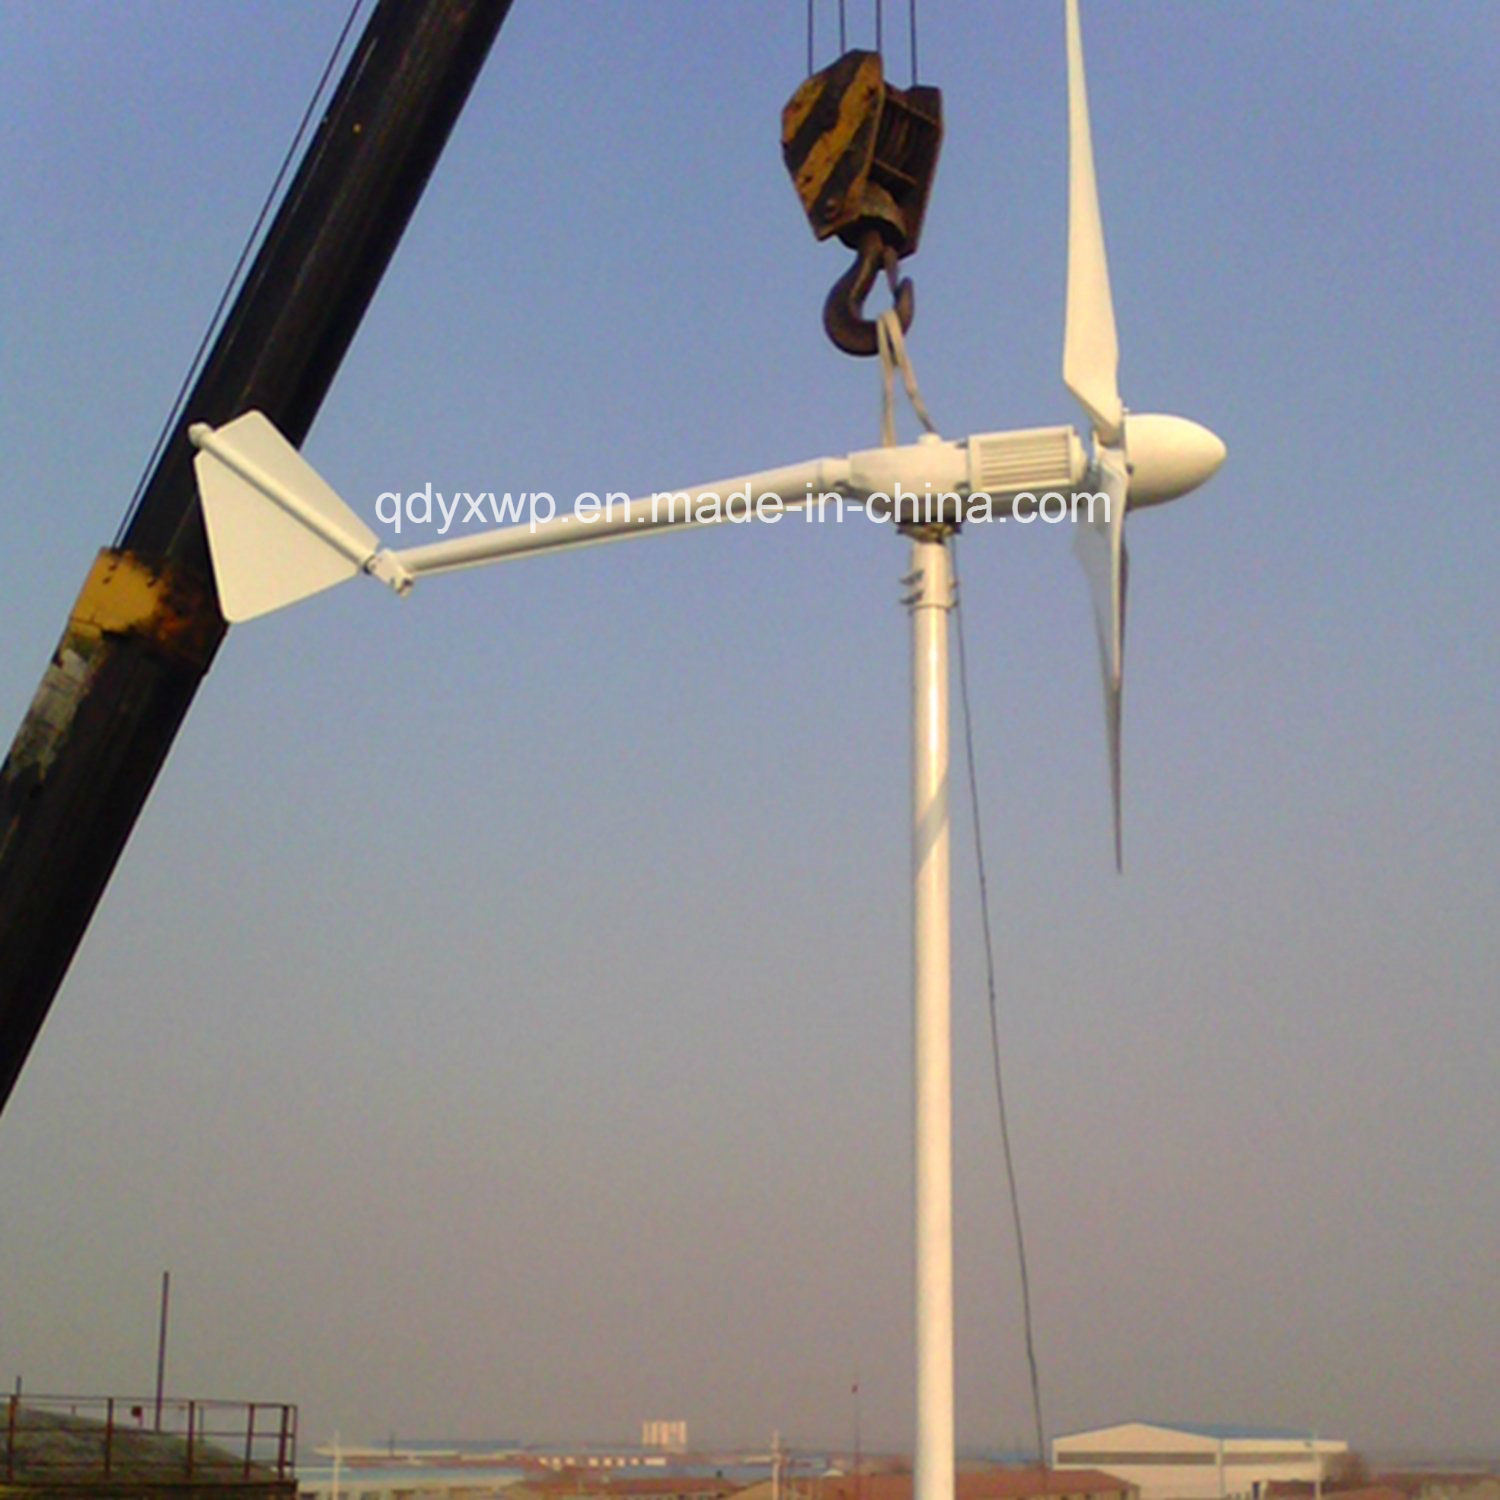 2kw Wind Turbine for Home Use 24V 48VDC pictures & photos